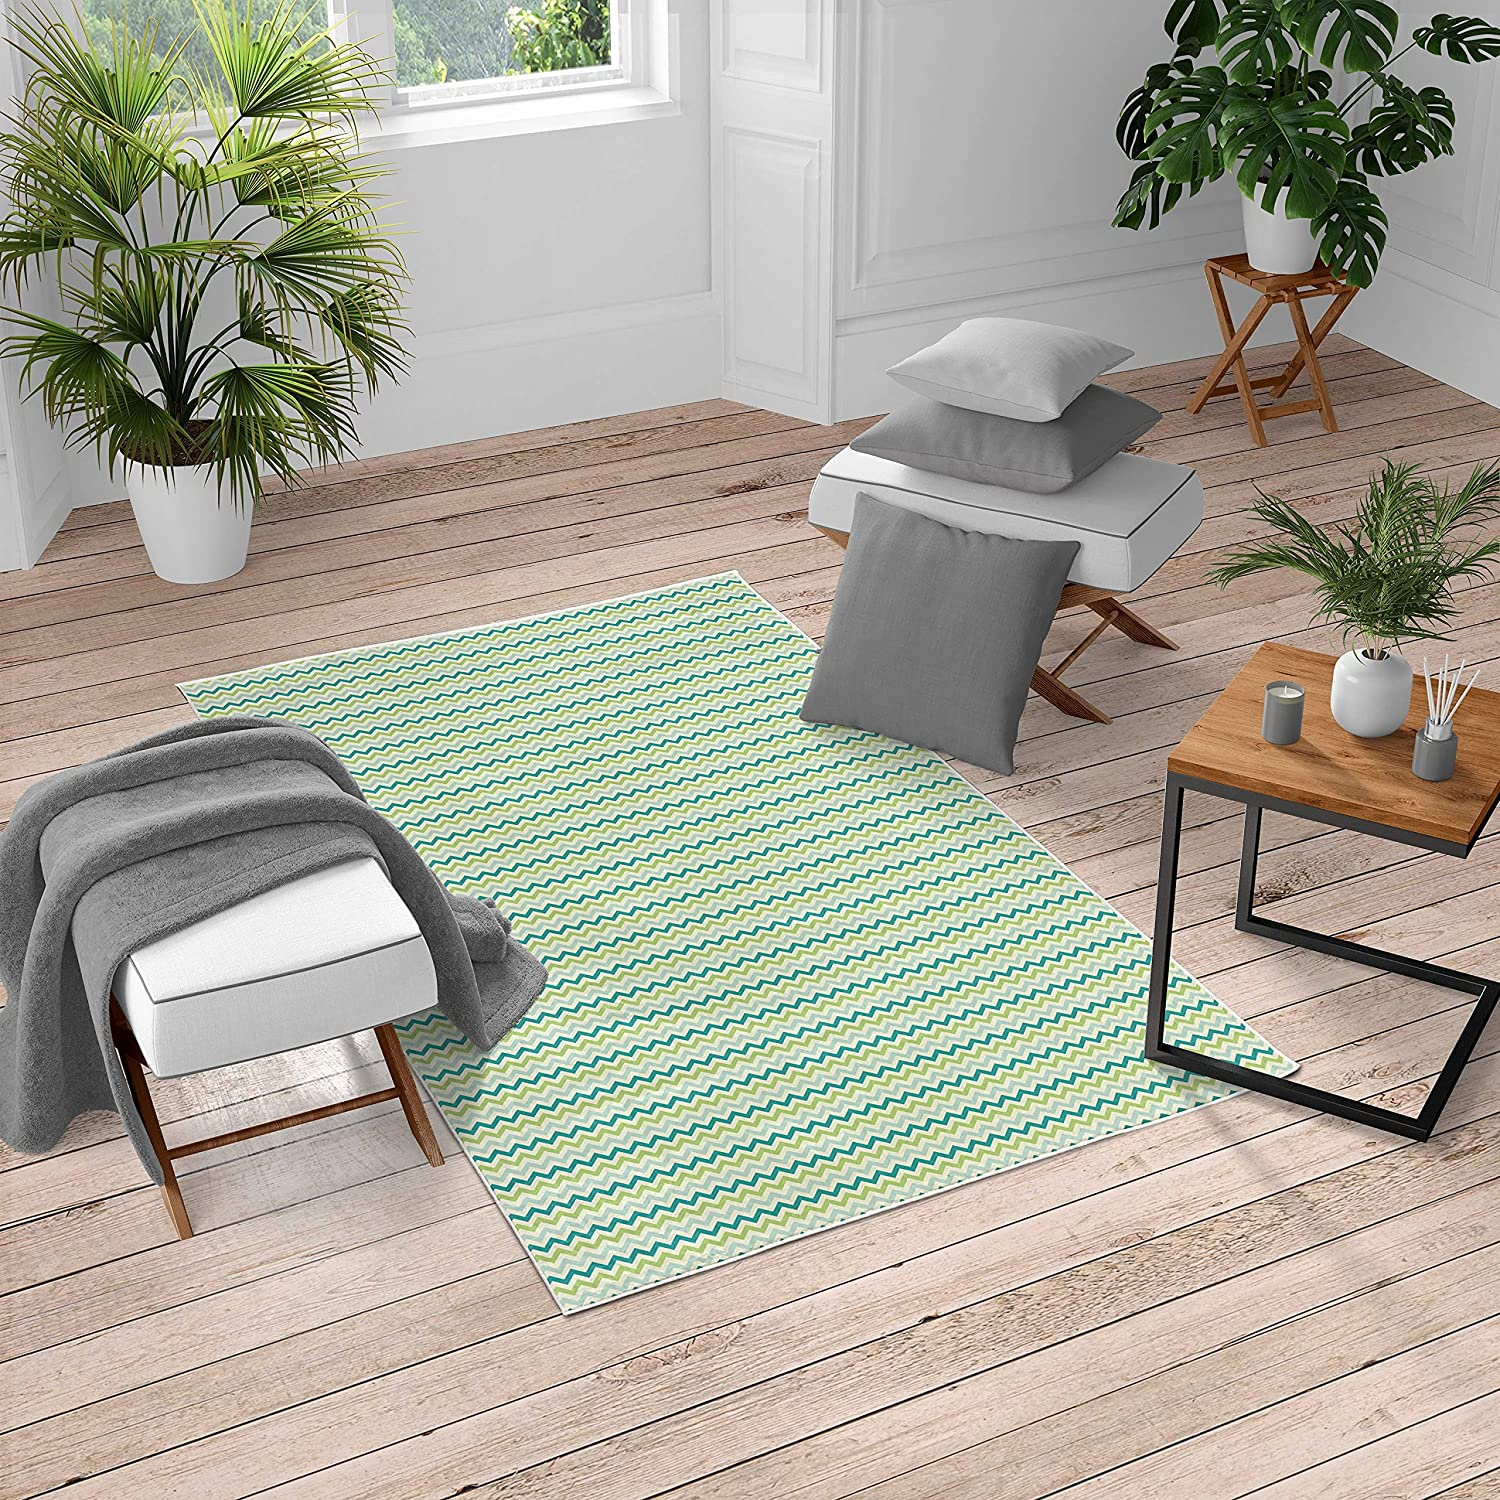 Lunarable Chevron Turkish Recommendation Area Rug Cool Past Pattern List price in